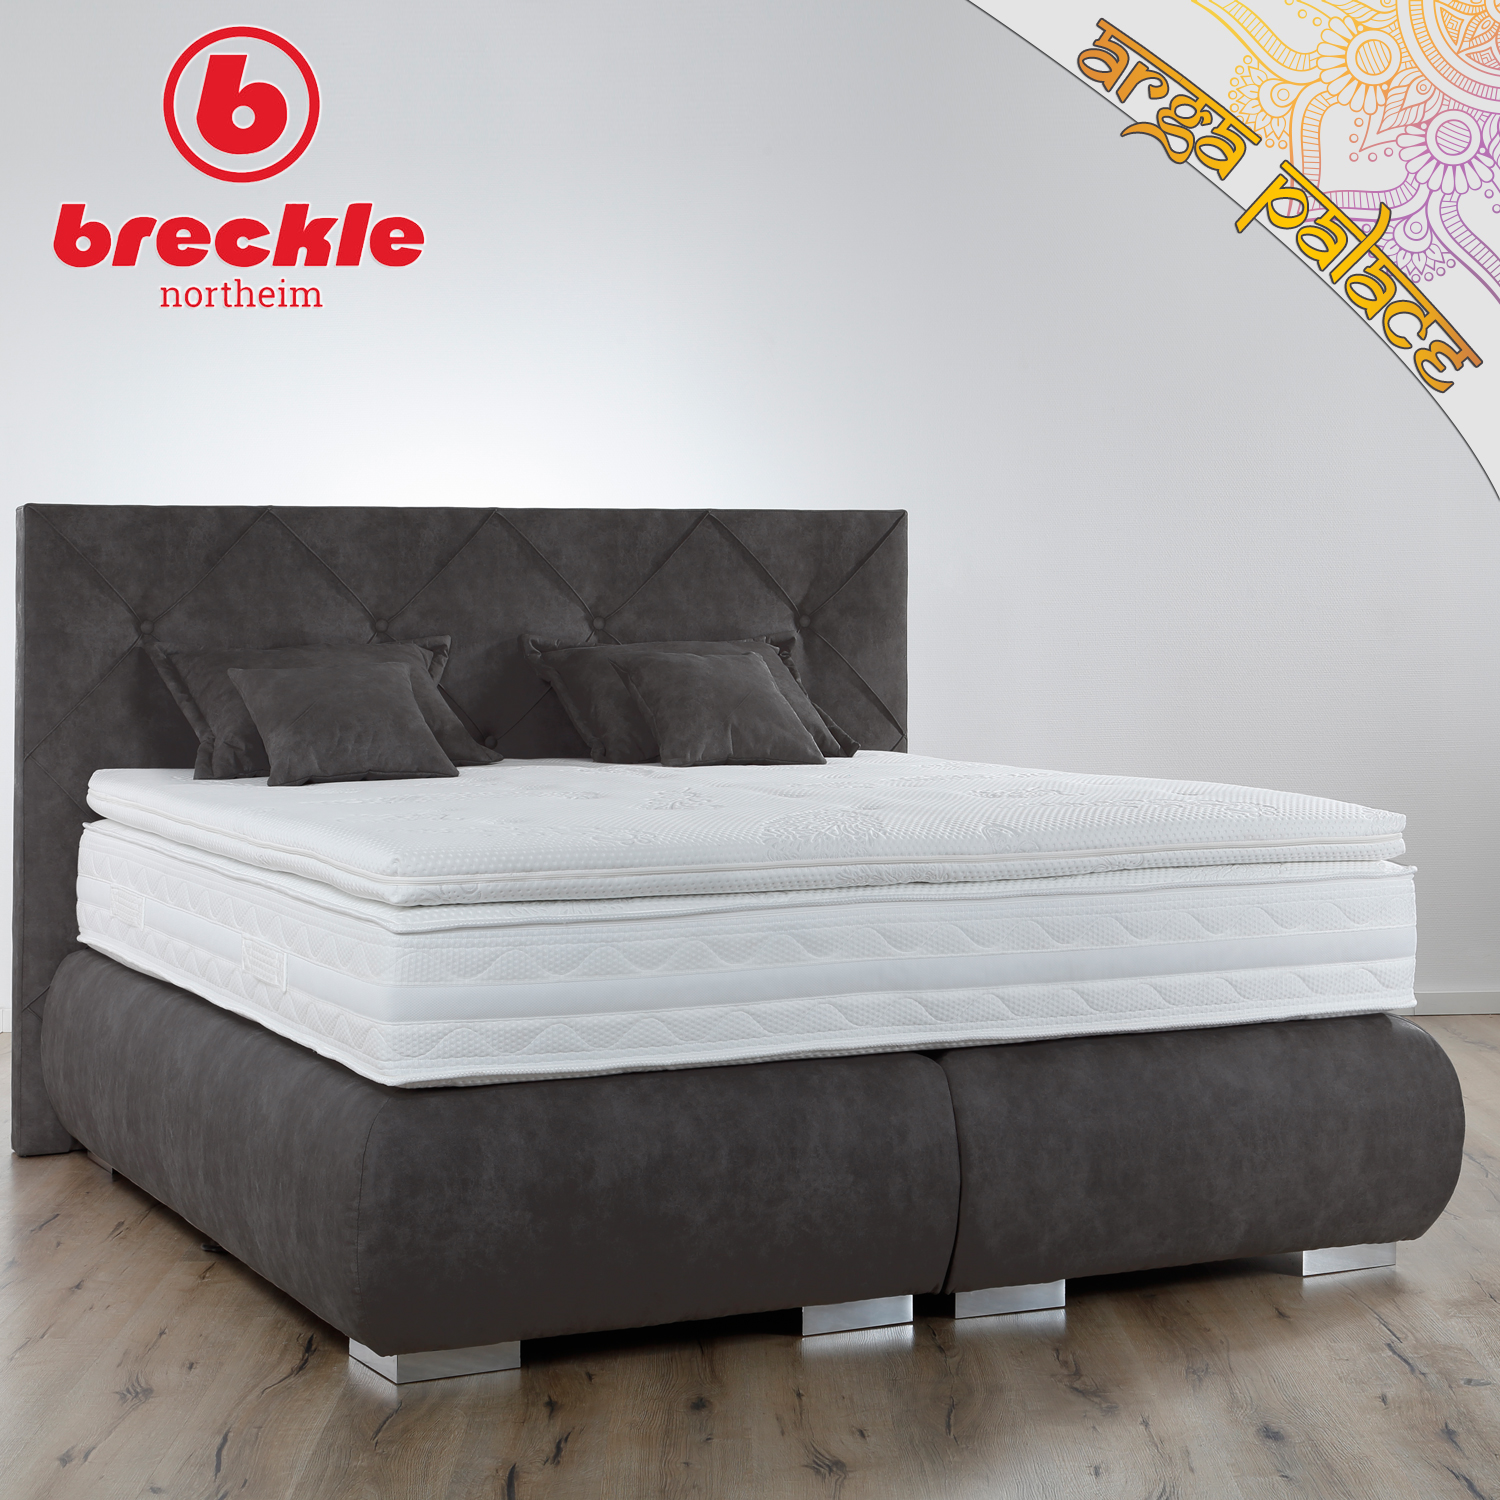 breckle boxspringbett arga palace 140x200 cm inkl gel topper platin premium kissenset. Black Bedroom Furniture Sets. Home Design Ideas